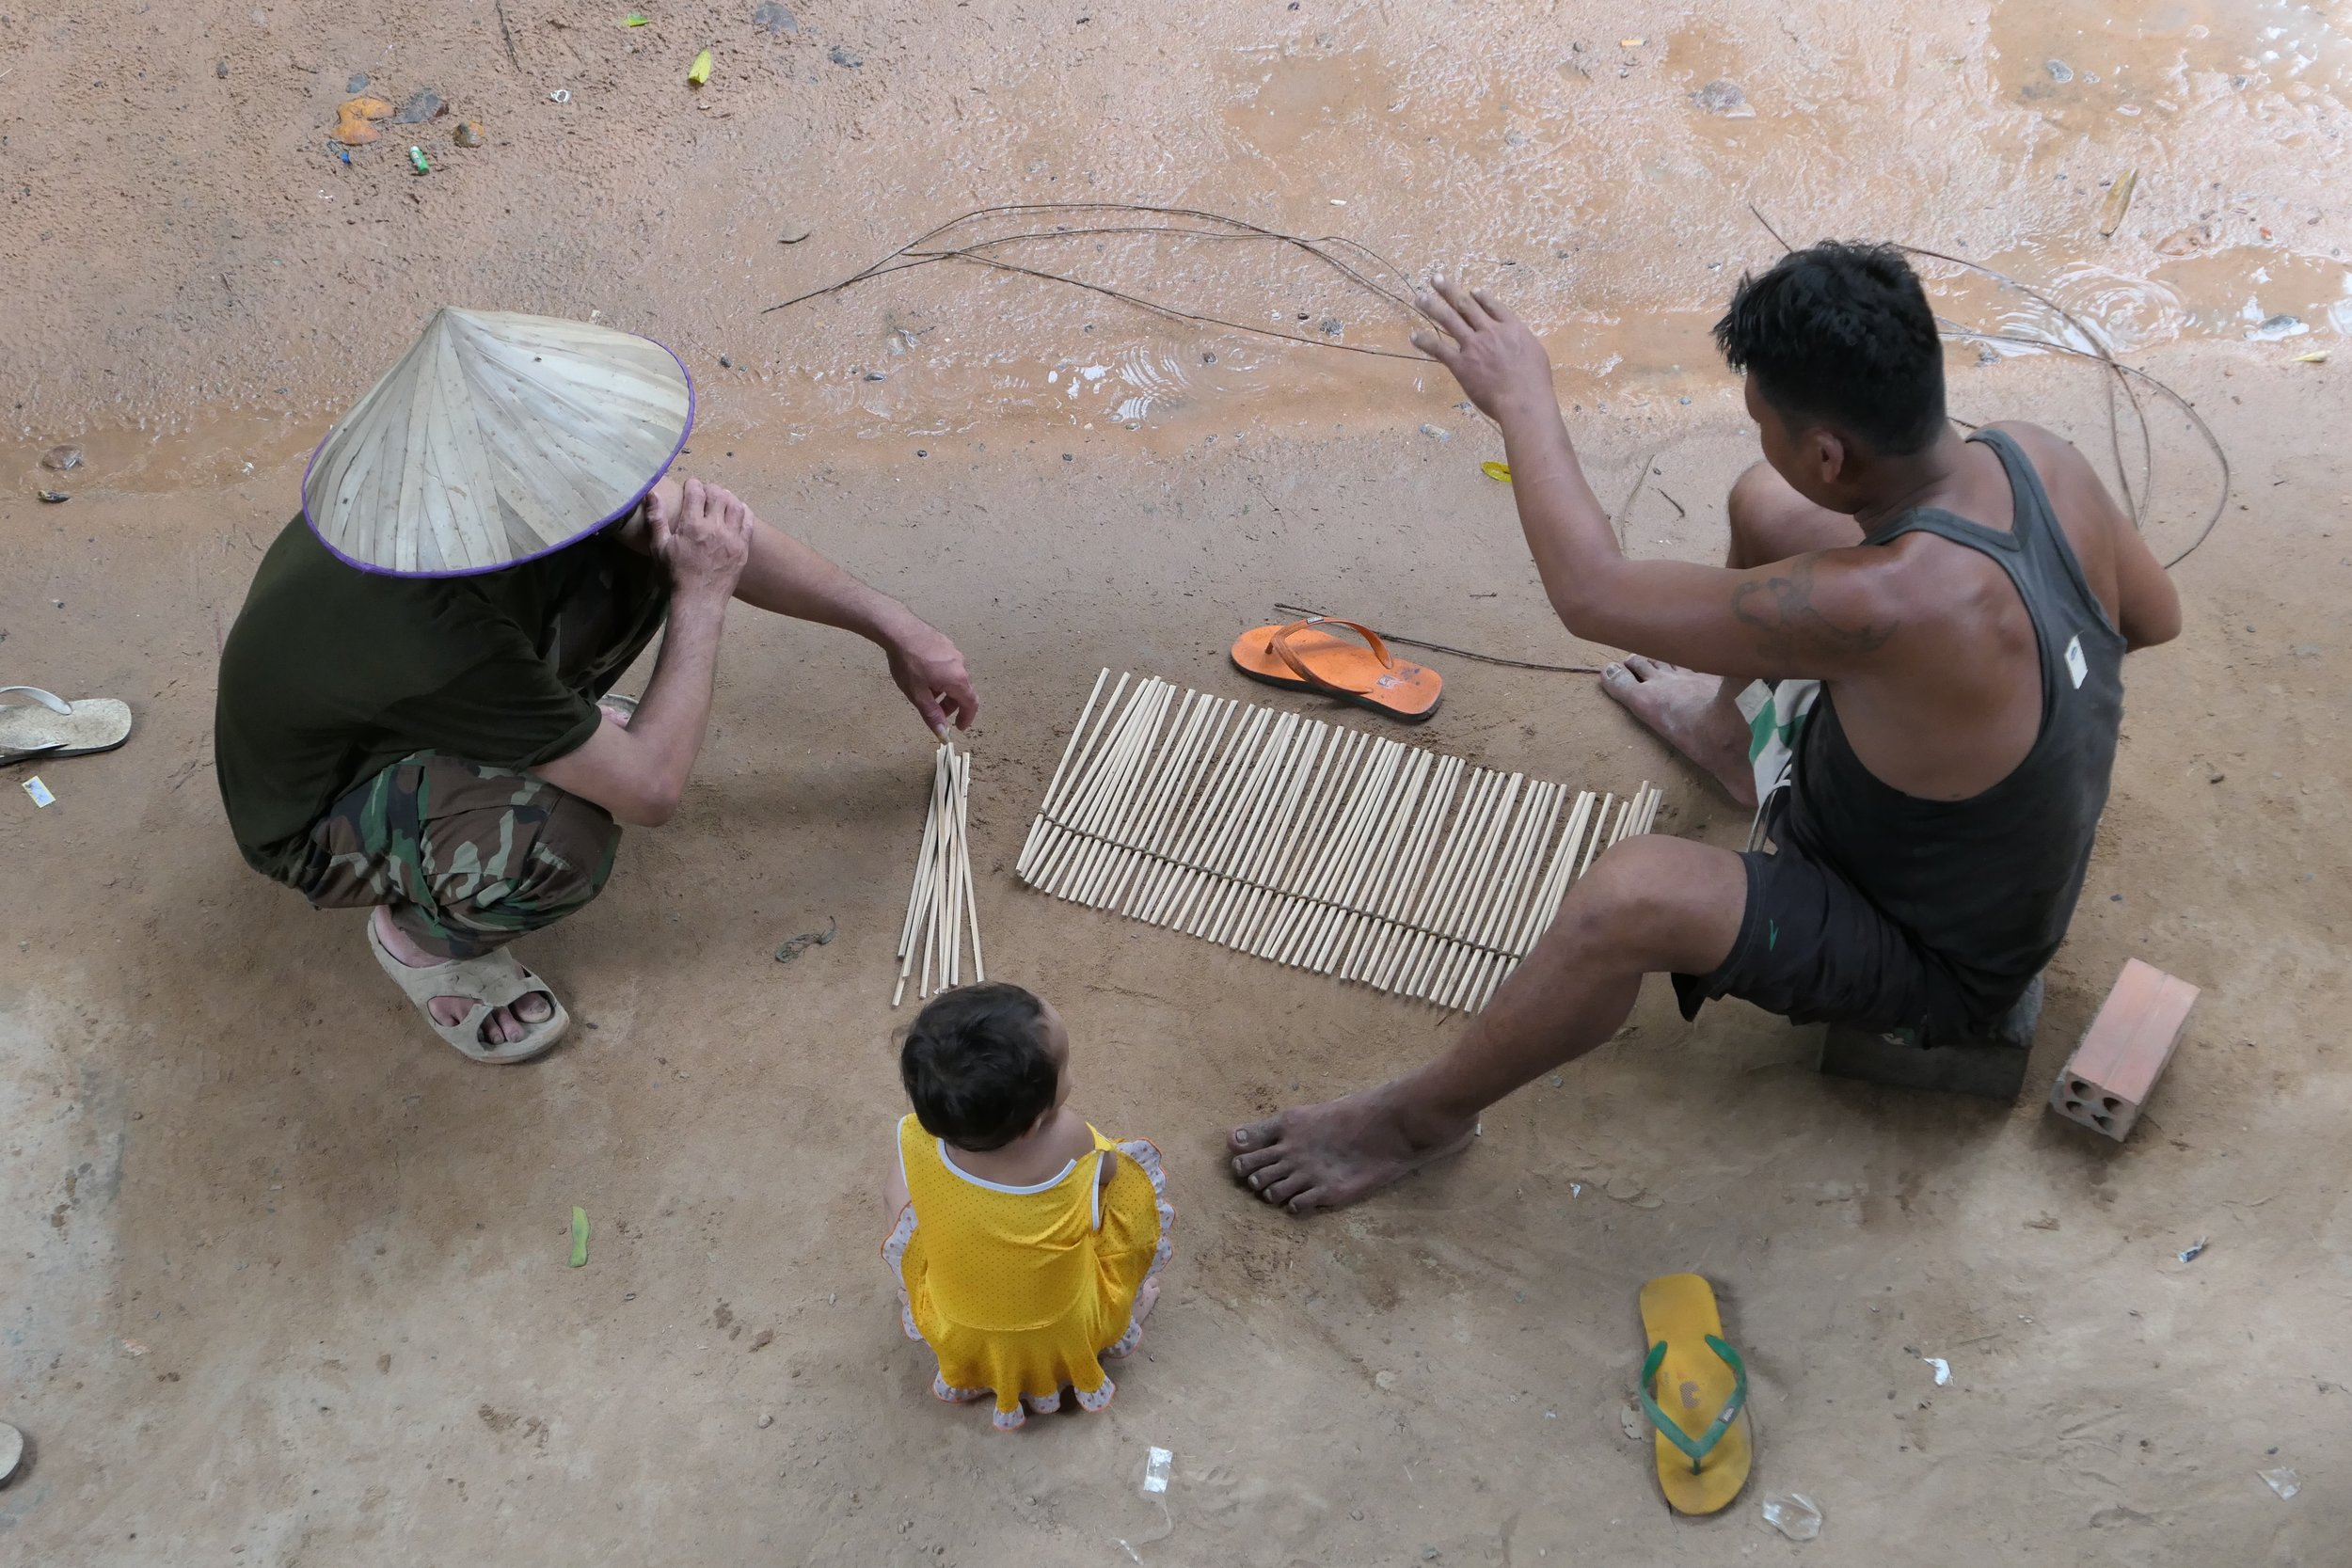 Sarou's brother-in-law and a local friend demonstrating a traditional bamboo weaving technique used to build various crafts such as window shades or frog traps.